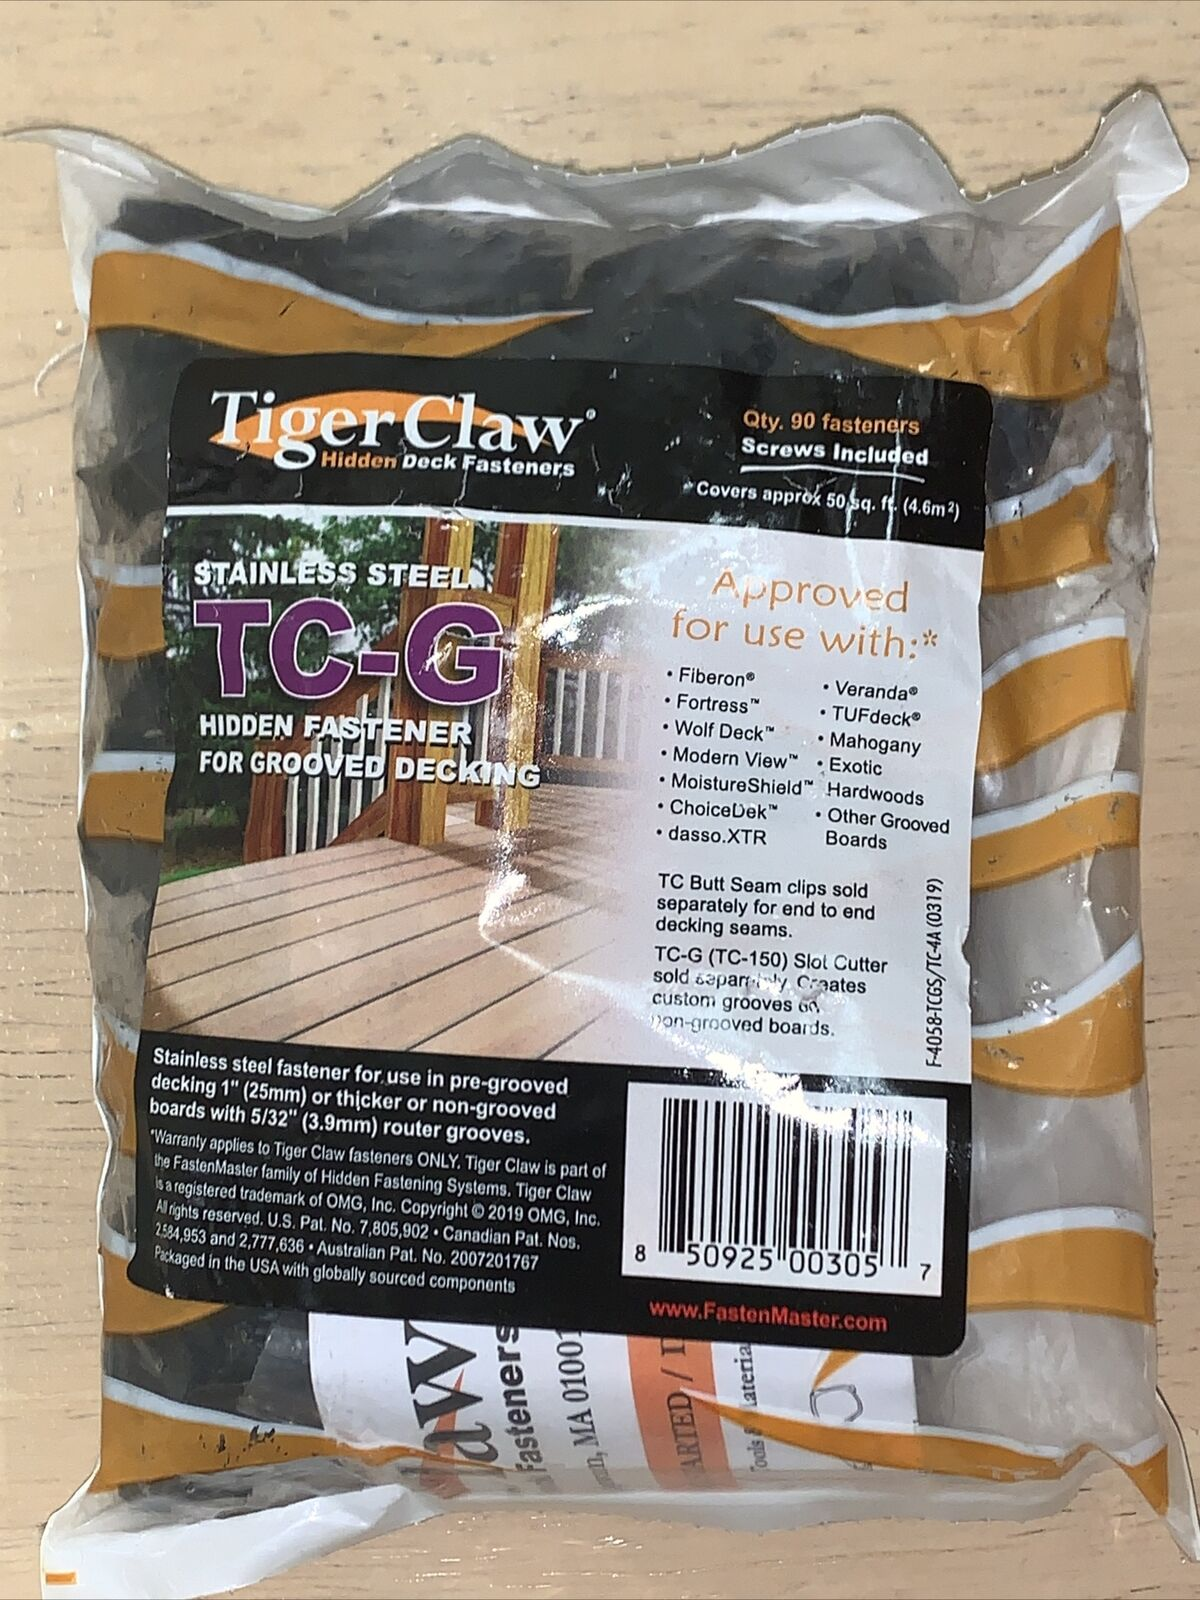 TC-3 Tiger Claw Stainless Steel Hidden Deck Fasteners TREX,Composite New 100 PK